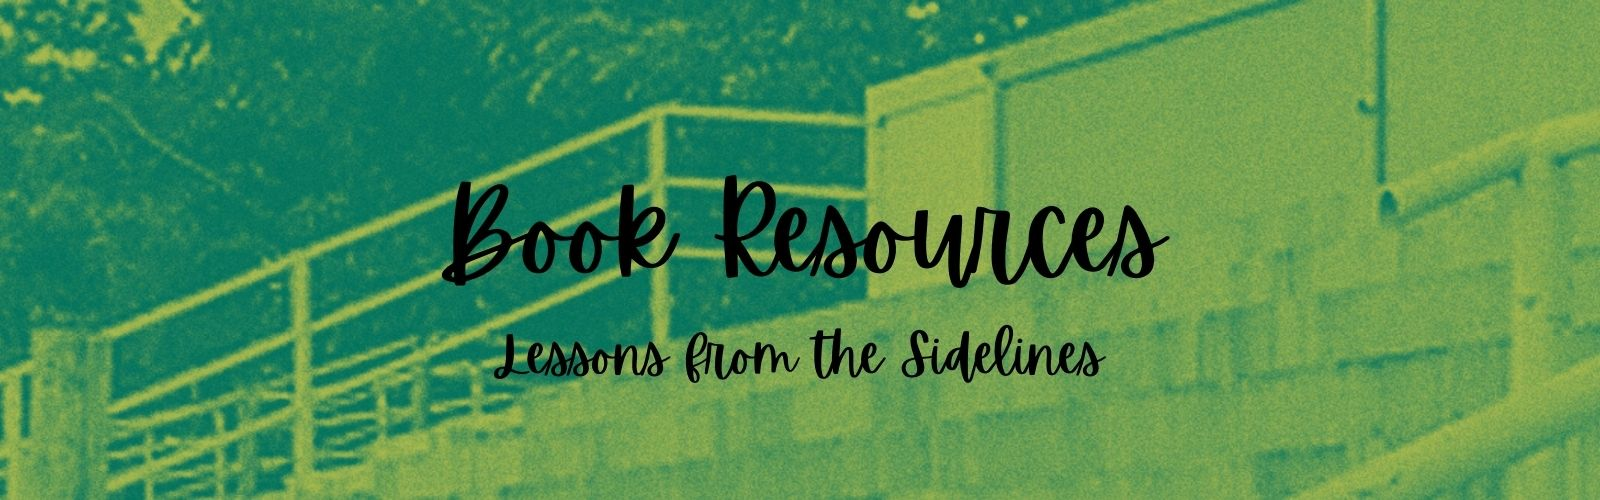 Book Resources Lessons from the Sidelines